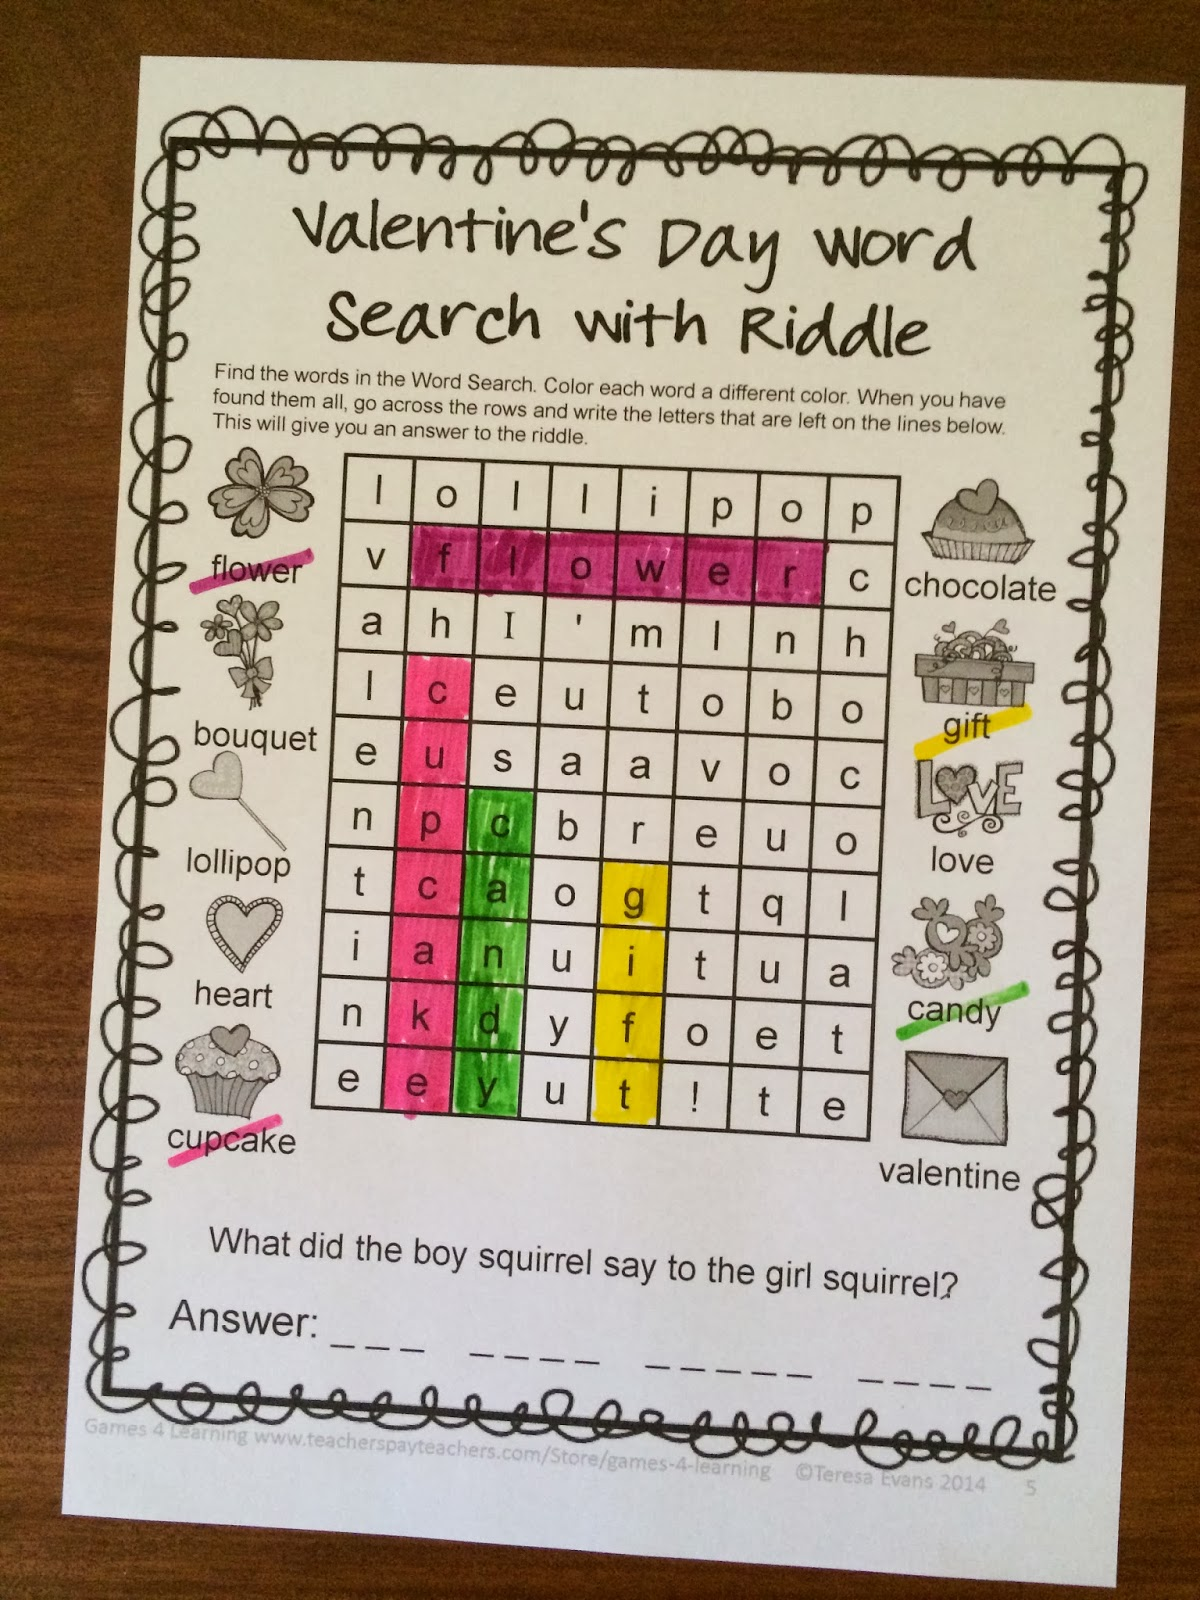 http://www.teacherspayteachers.com/Product/Valentines-Day-Literacy-Puzzles-and-Games-1092235